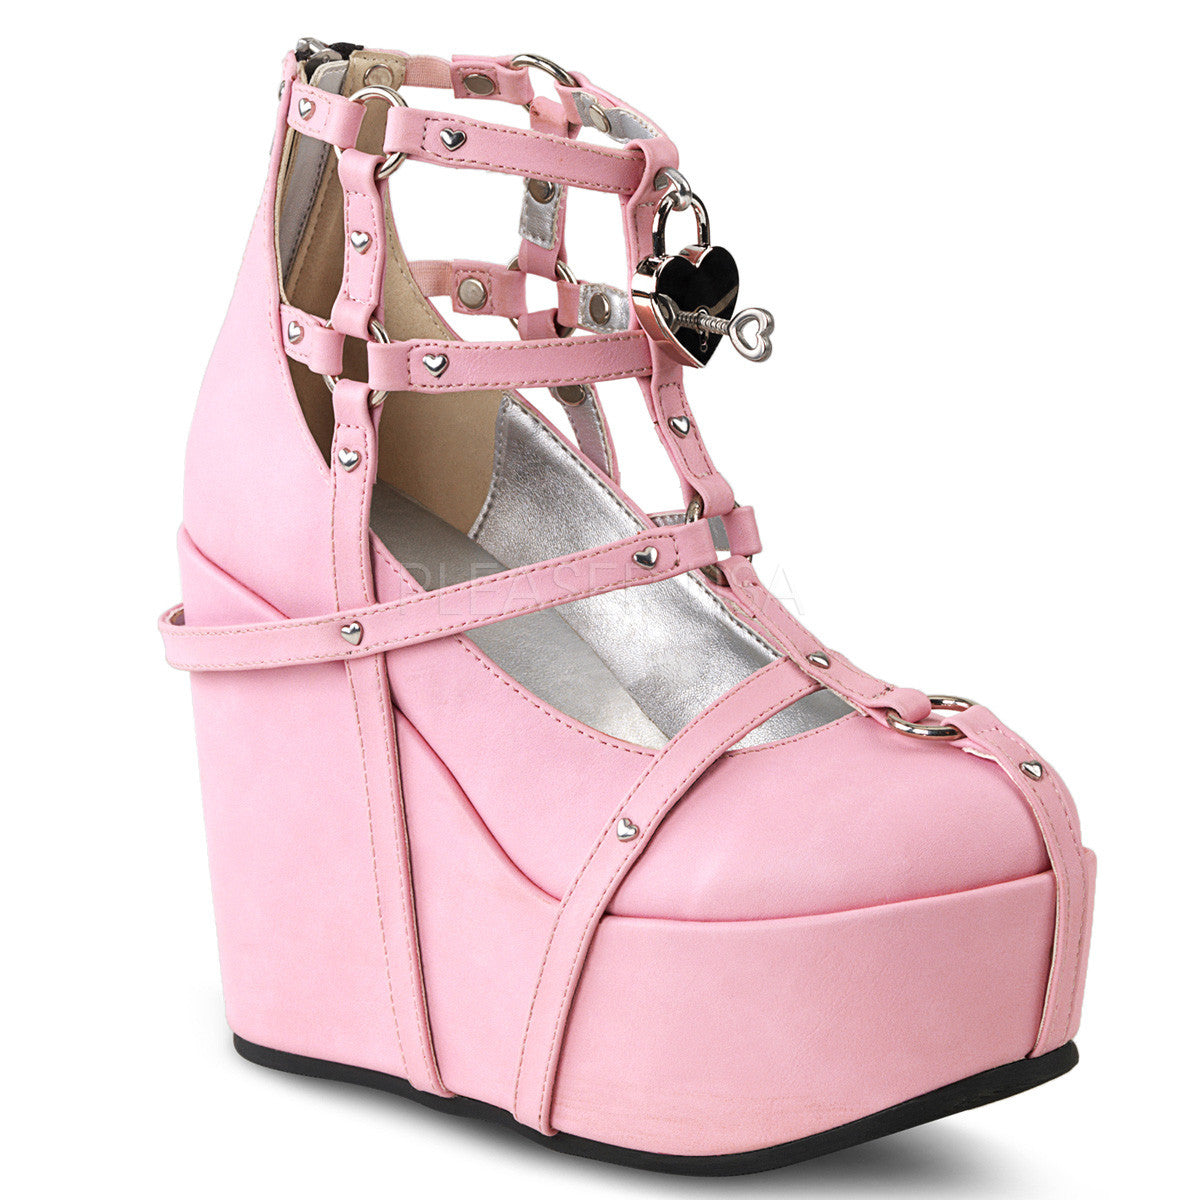 Demonia POISON-25-2 Pink Platform Wedges - Shoecup.com